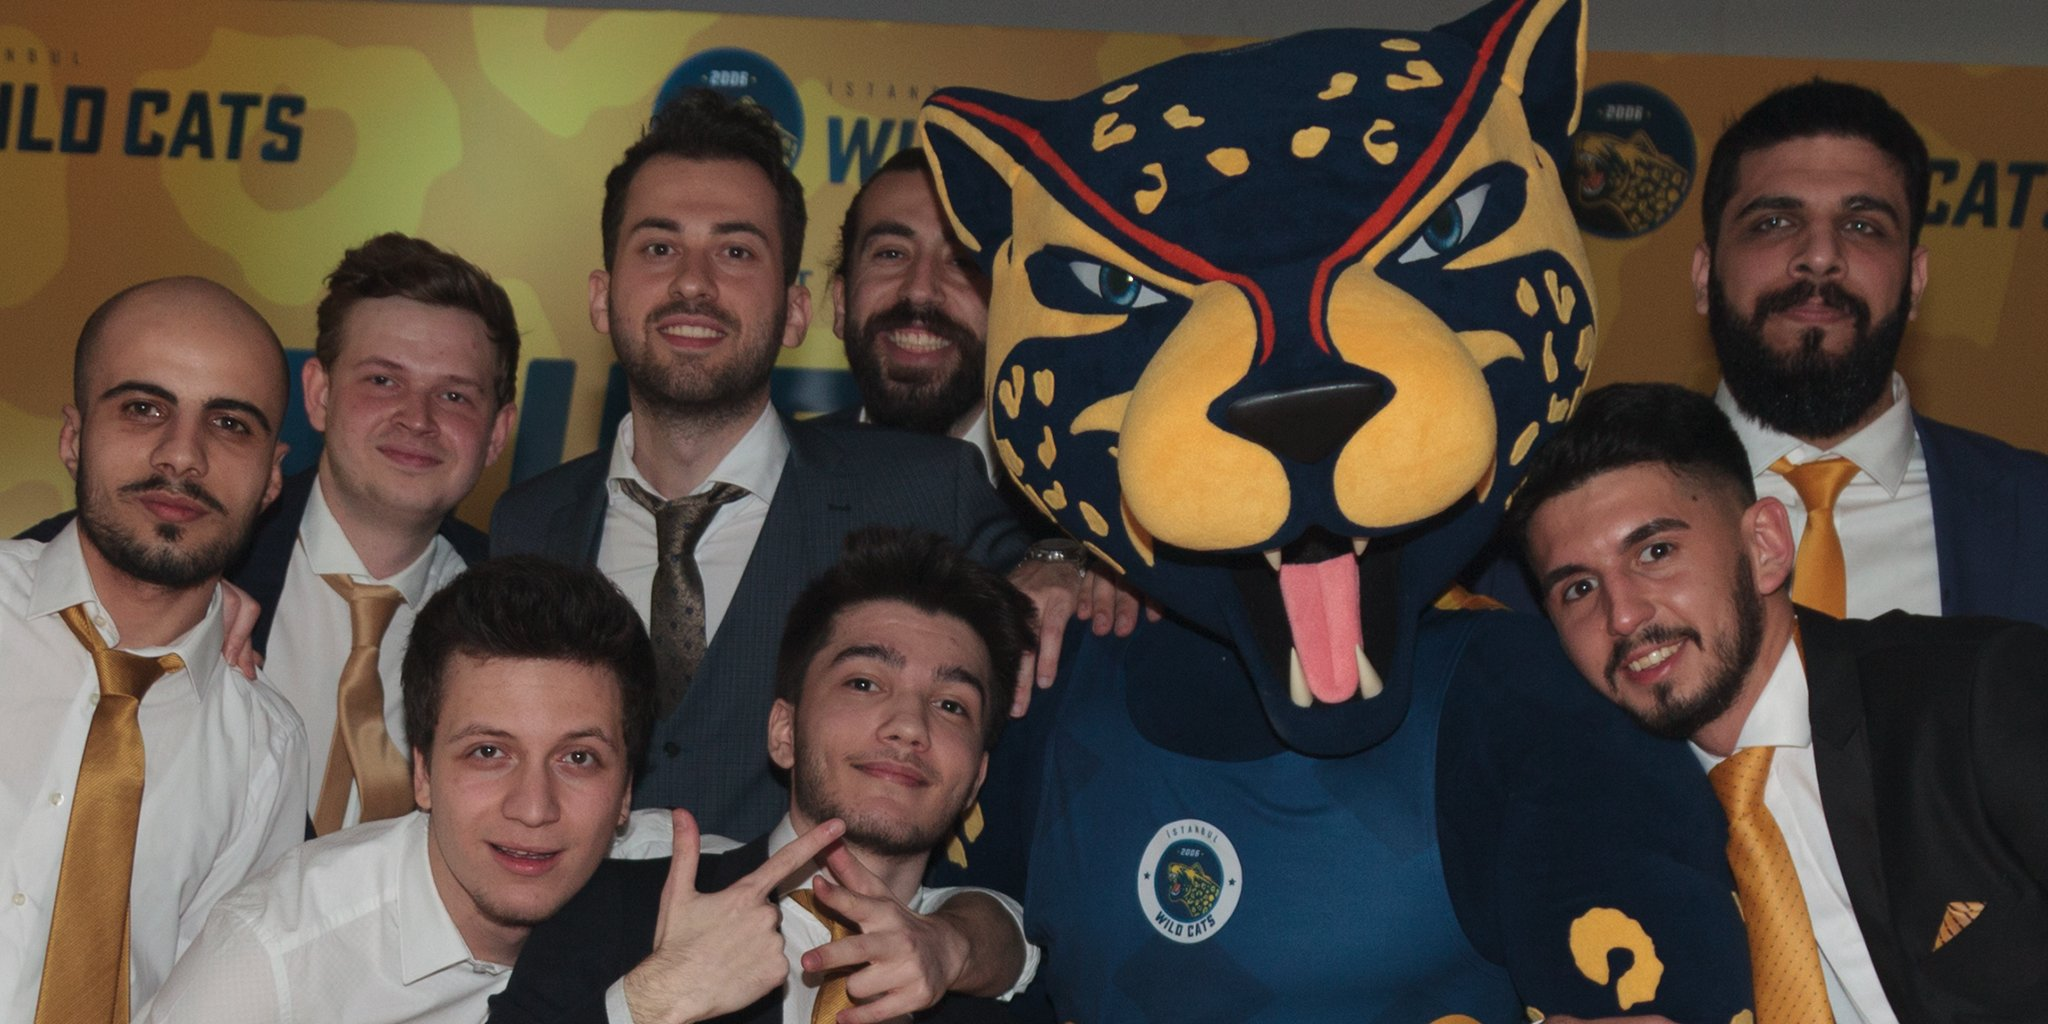 İstanbul Wild Cats